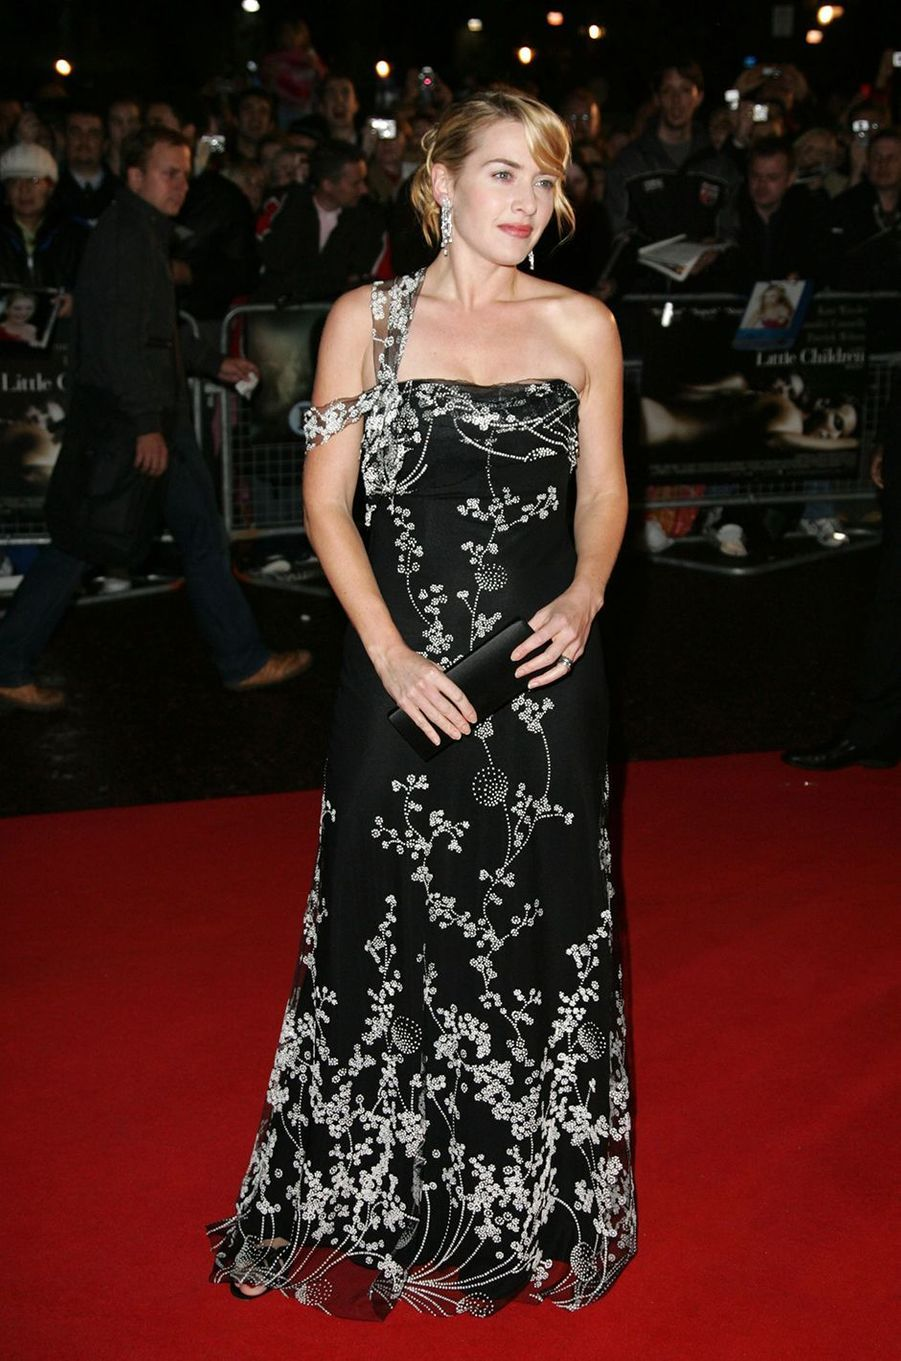 Kate Winslet lors d'une projection du film «Little Children» au BFI London Film Festival en octobre 2006